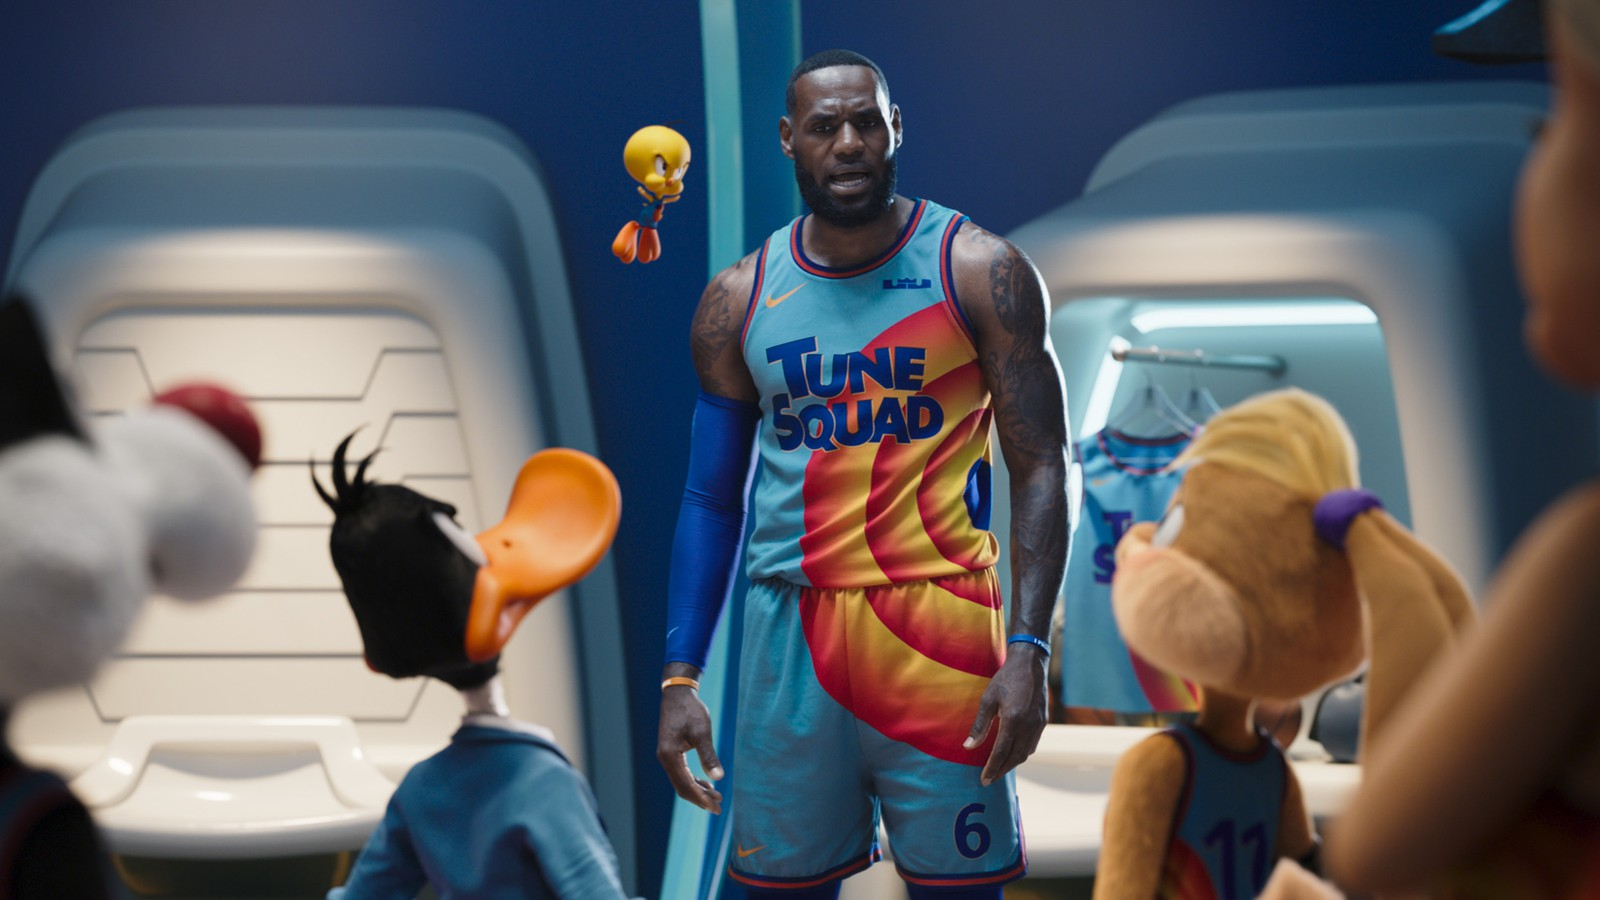 Space Jam: A New Legacy' Embraces Crass Commercialism - The Atlantic